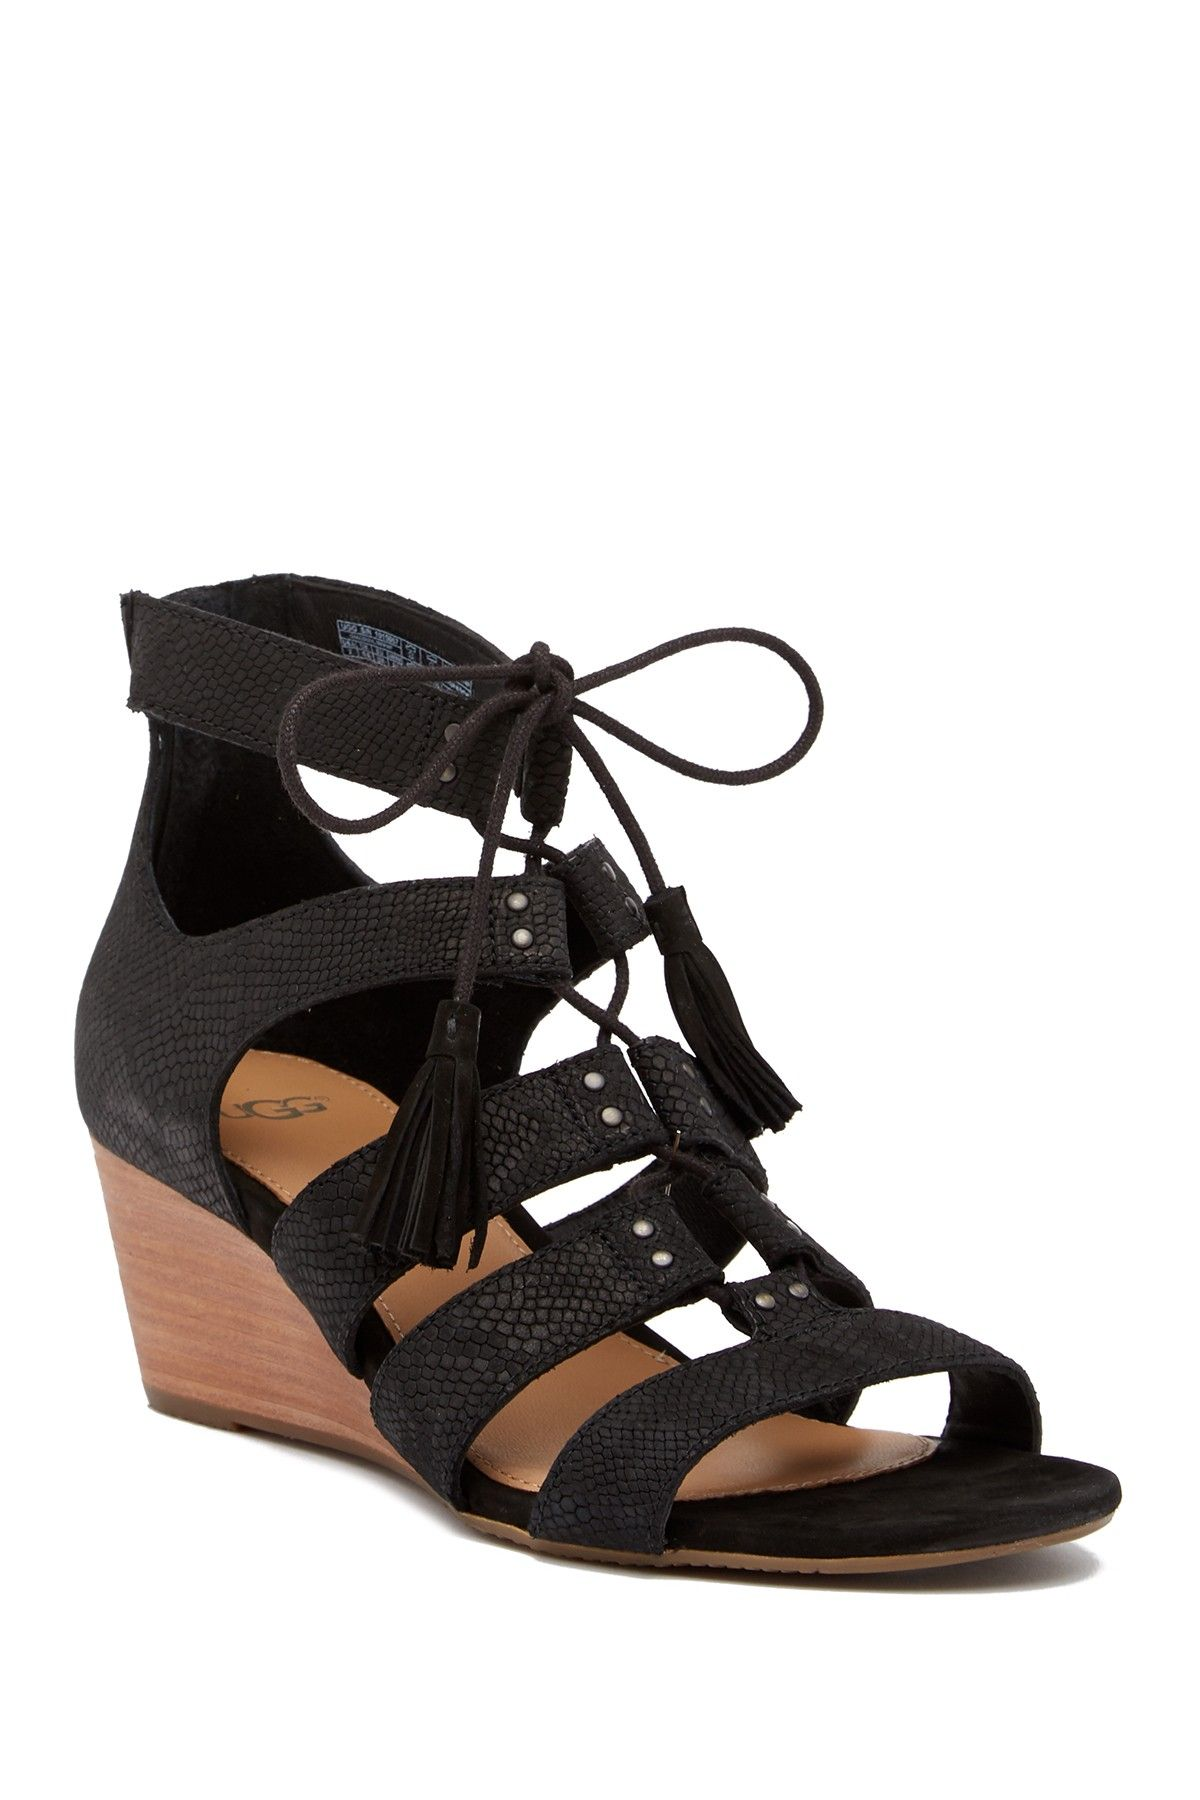 UGG Yasmin Snake Embossed Wedge Sandal